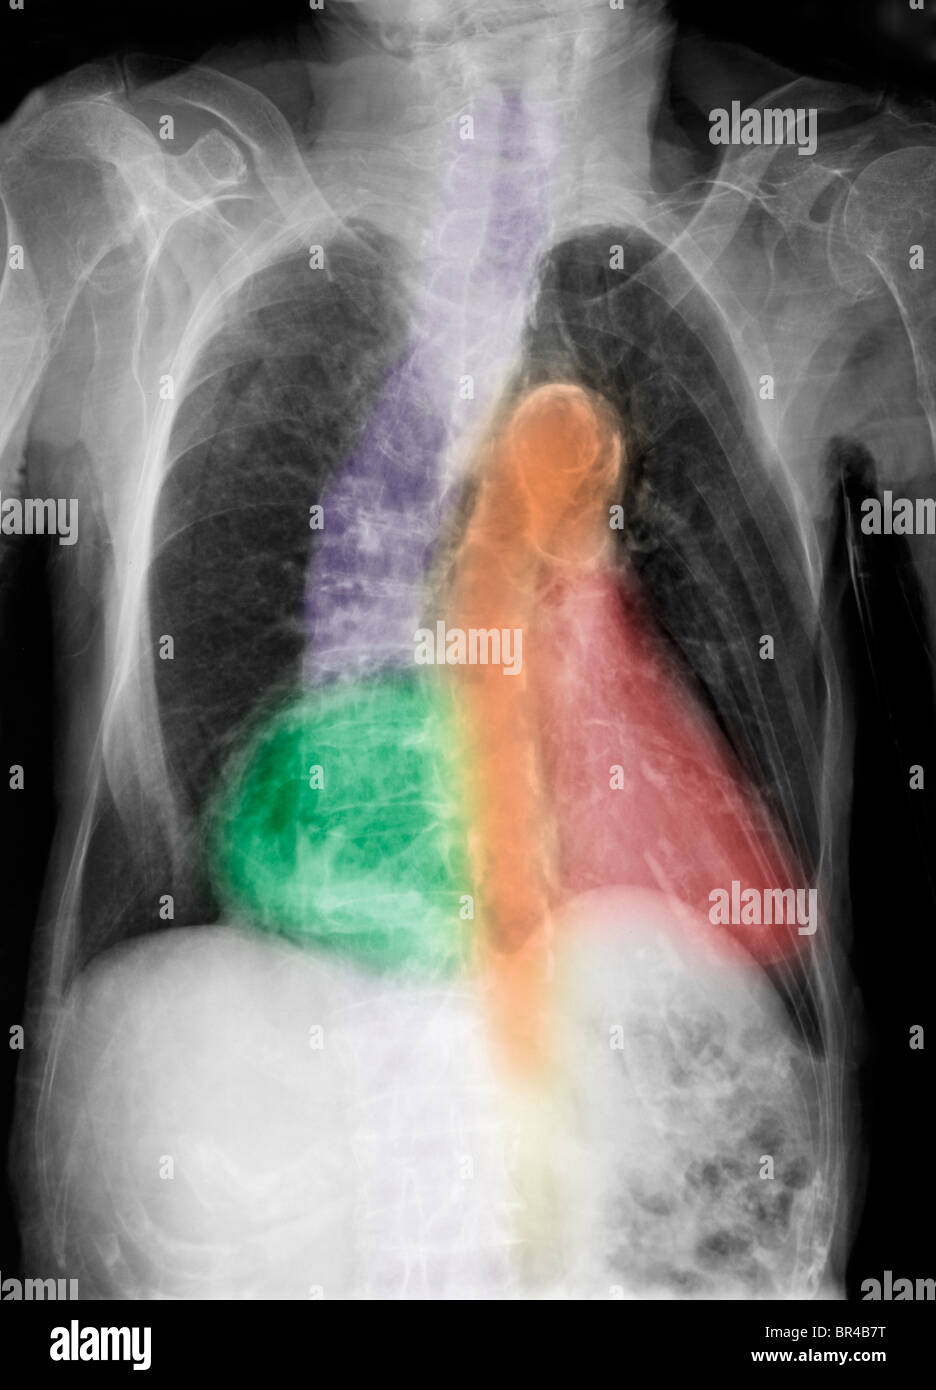 chest x-ray of a 96 year old woman with calcifications of the aorta, scoliosis and degenerative changes - Stock Image